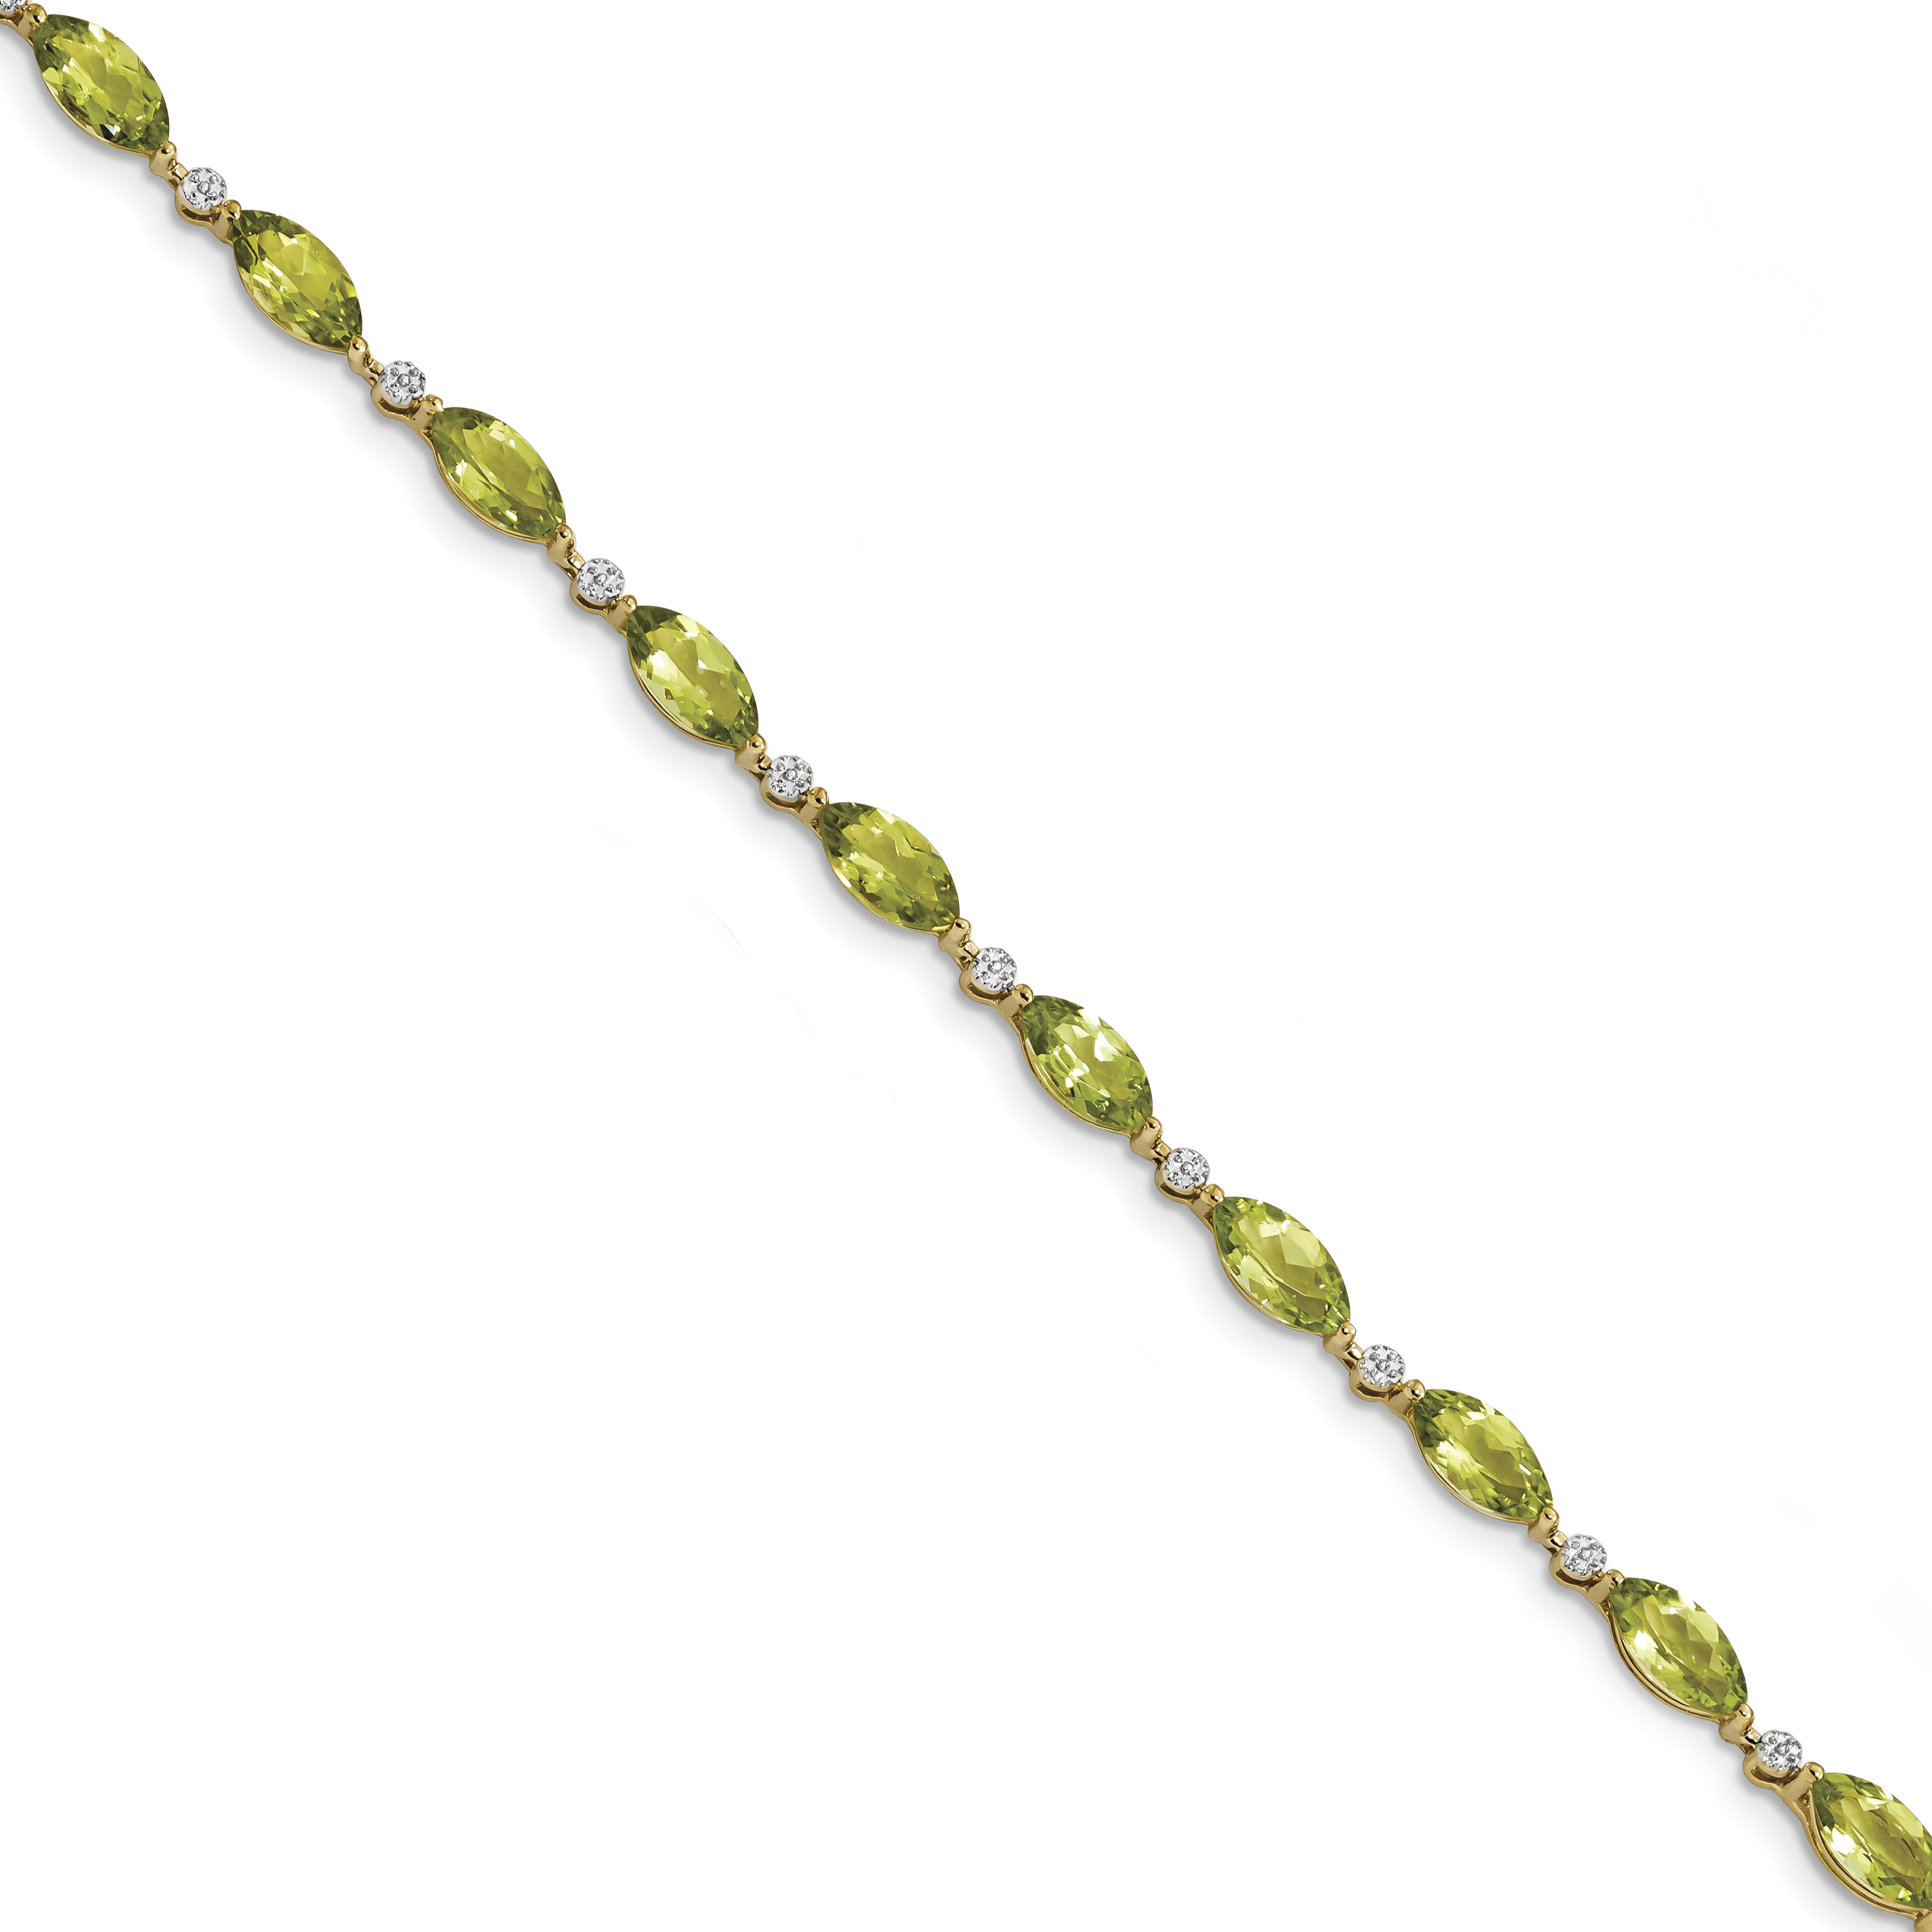 14k Yellow Gold Polished 0.01ct Diamond & 7.1ct Peridot 7.25in Bracelet by